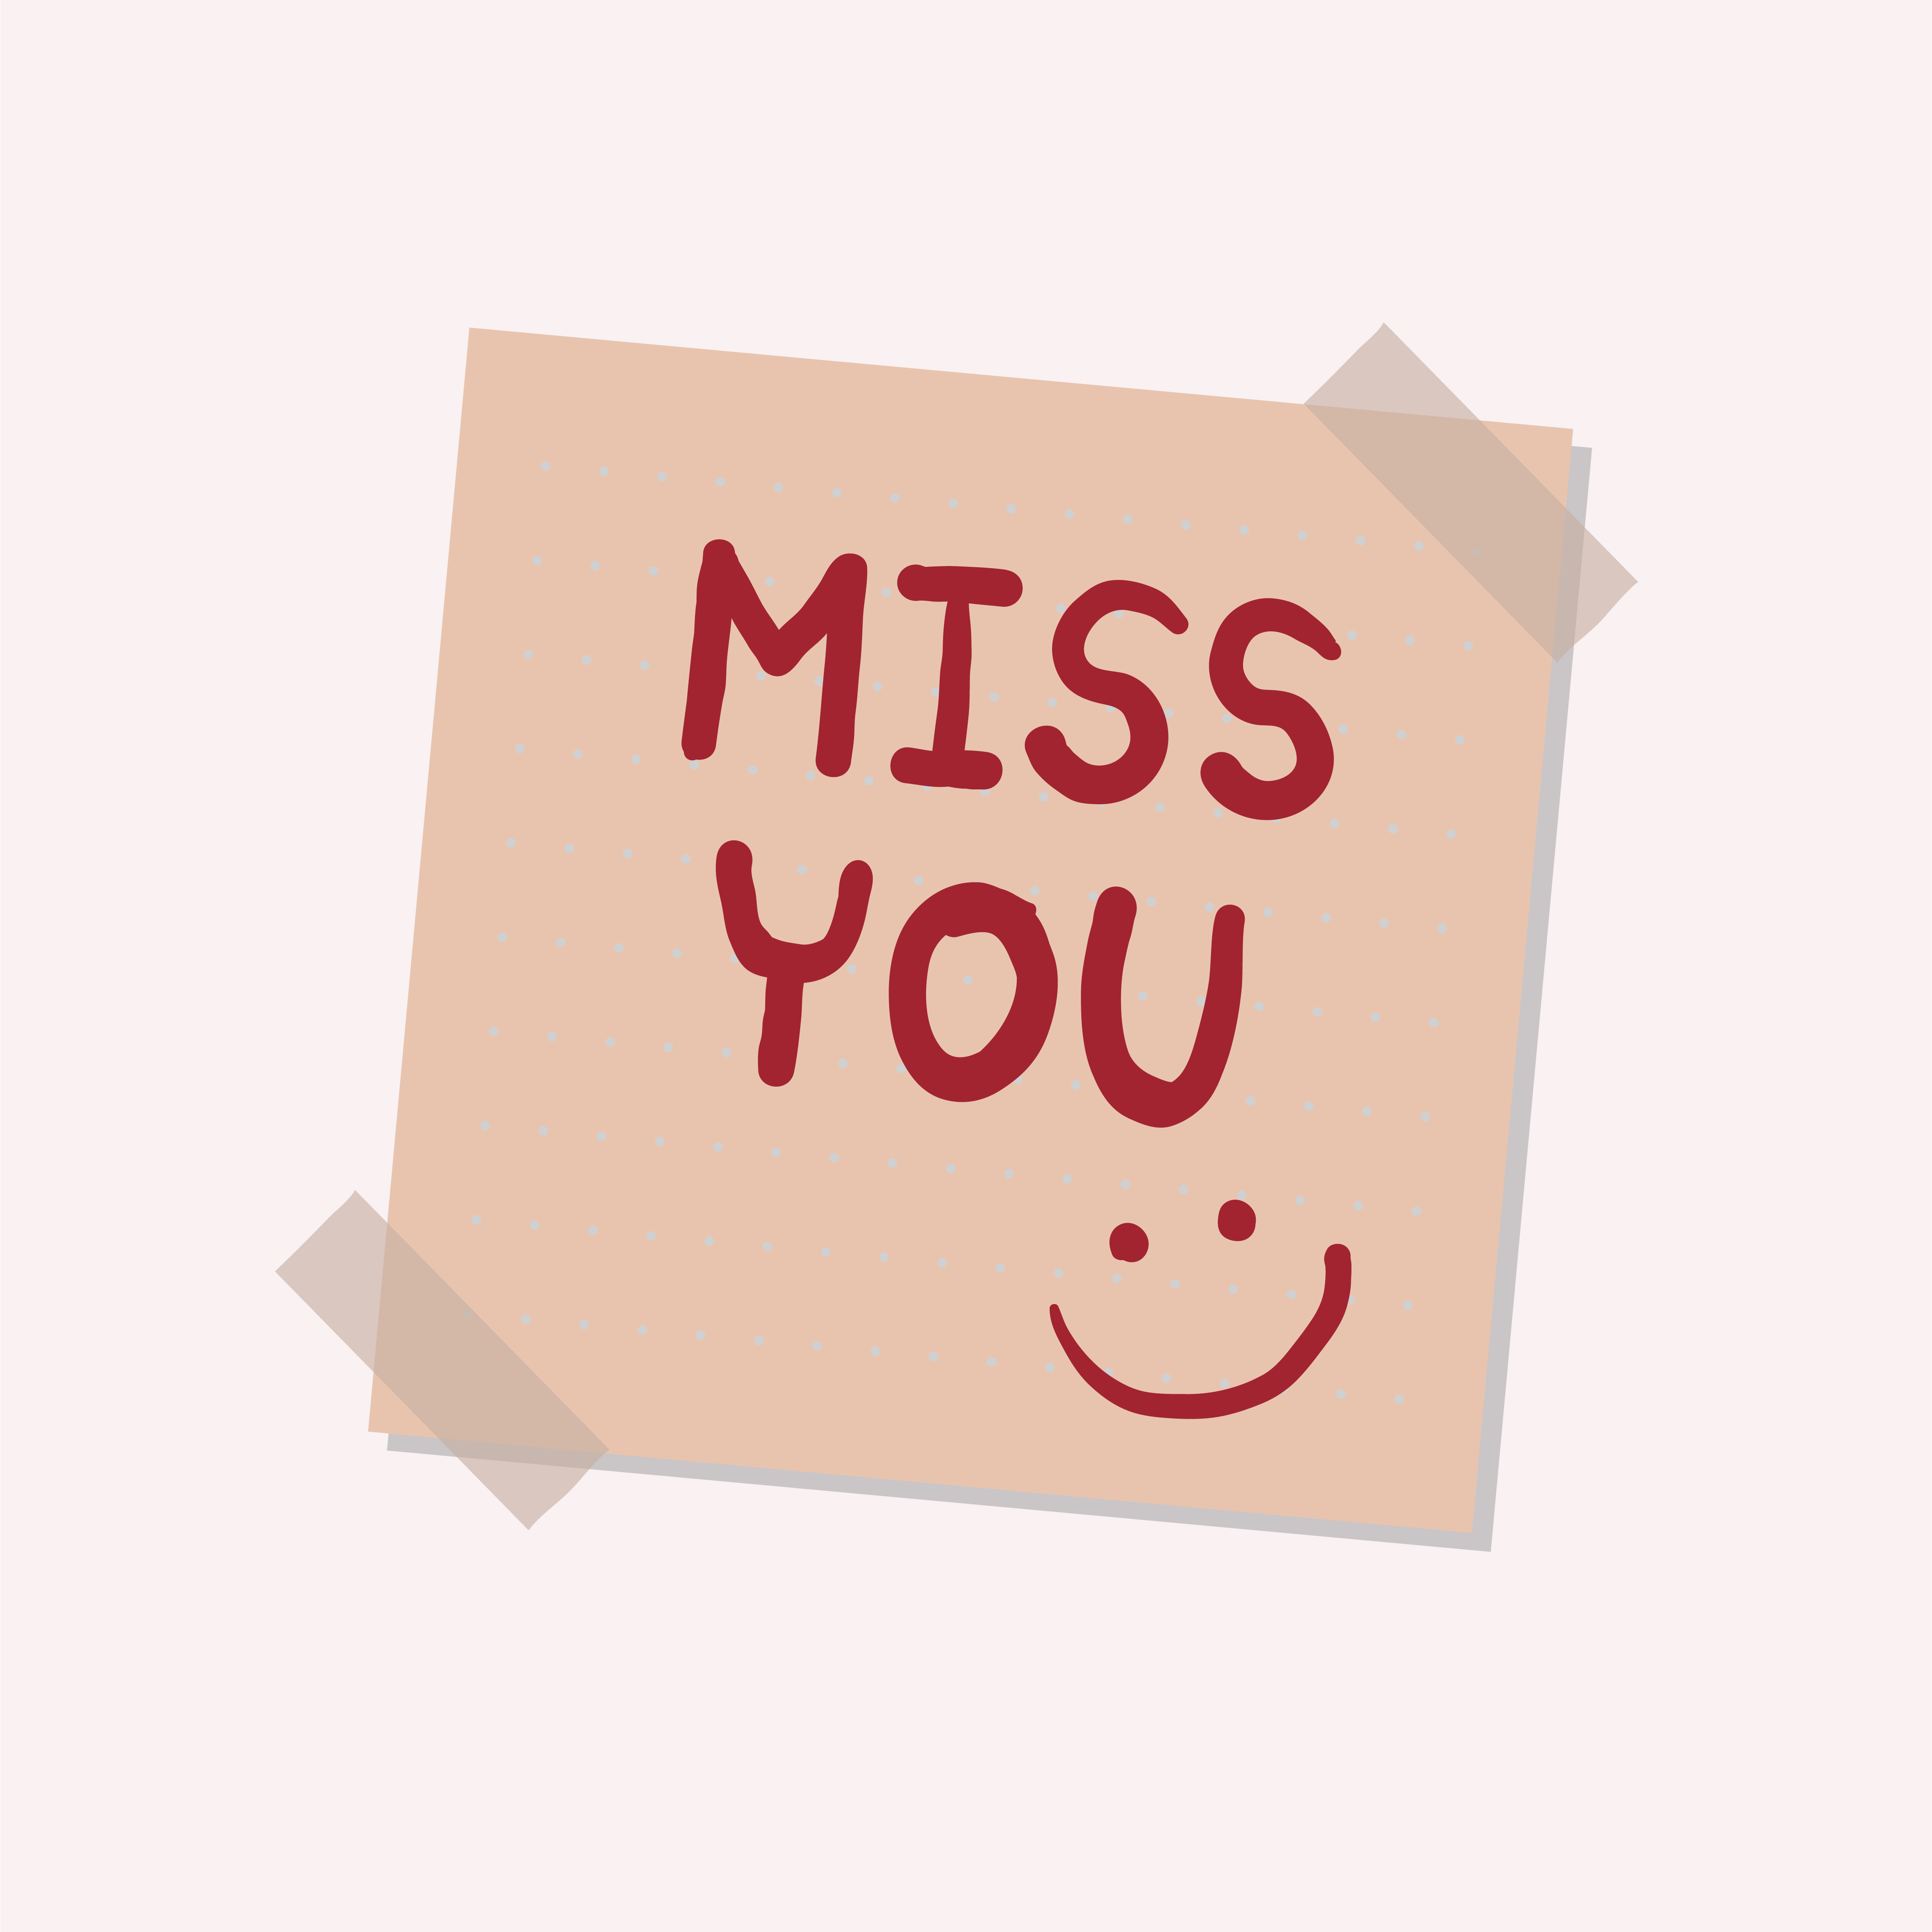 Miss You Free Vector Art - (40 Free Downloads)